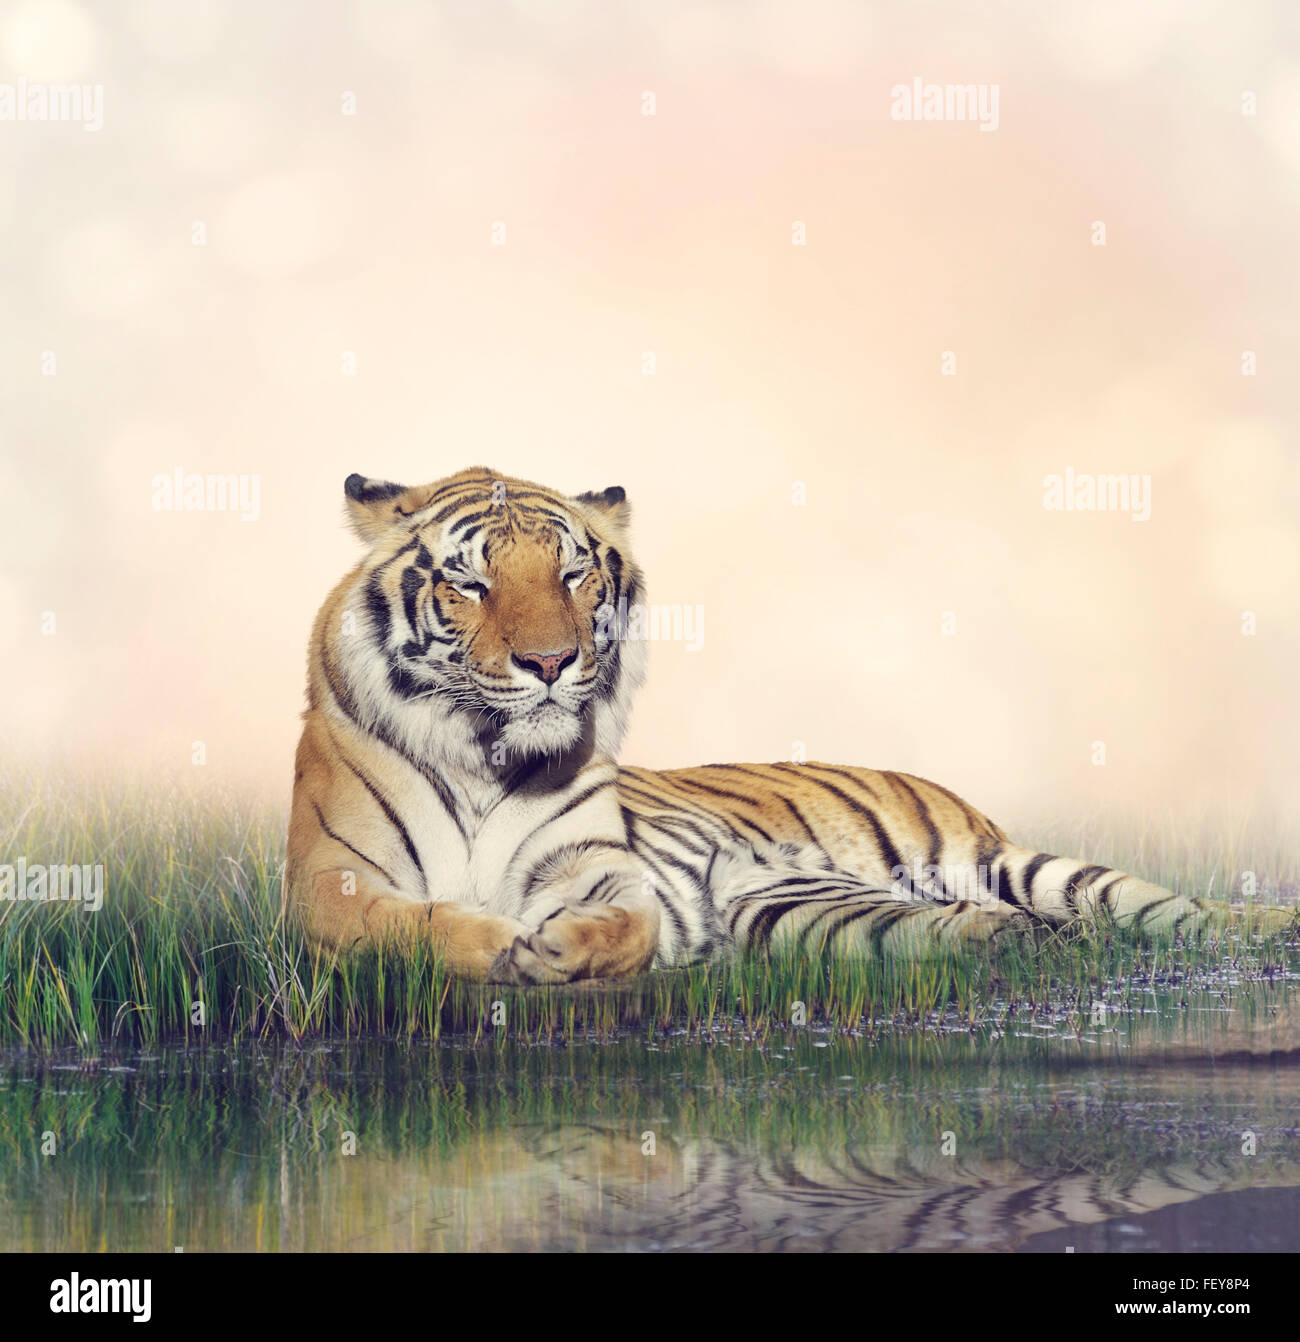 Tiger Resting Near a Pond - Stock Image